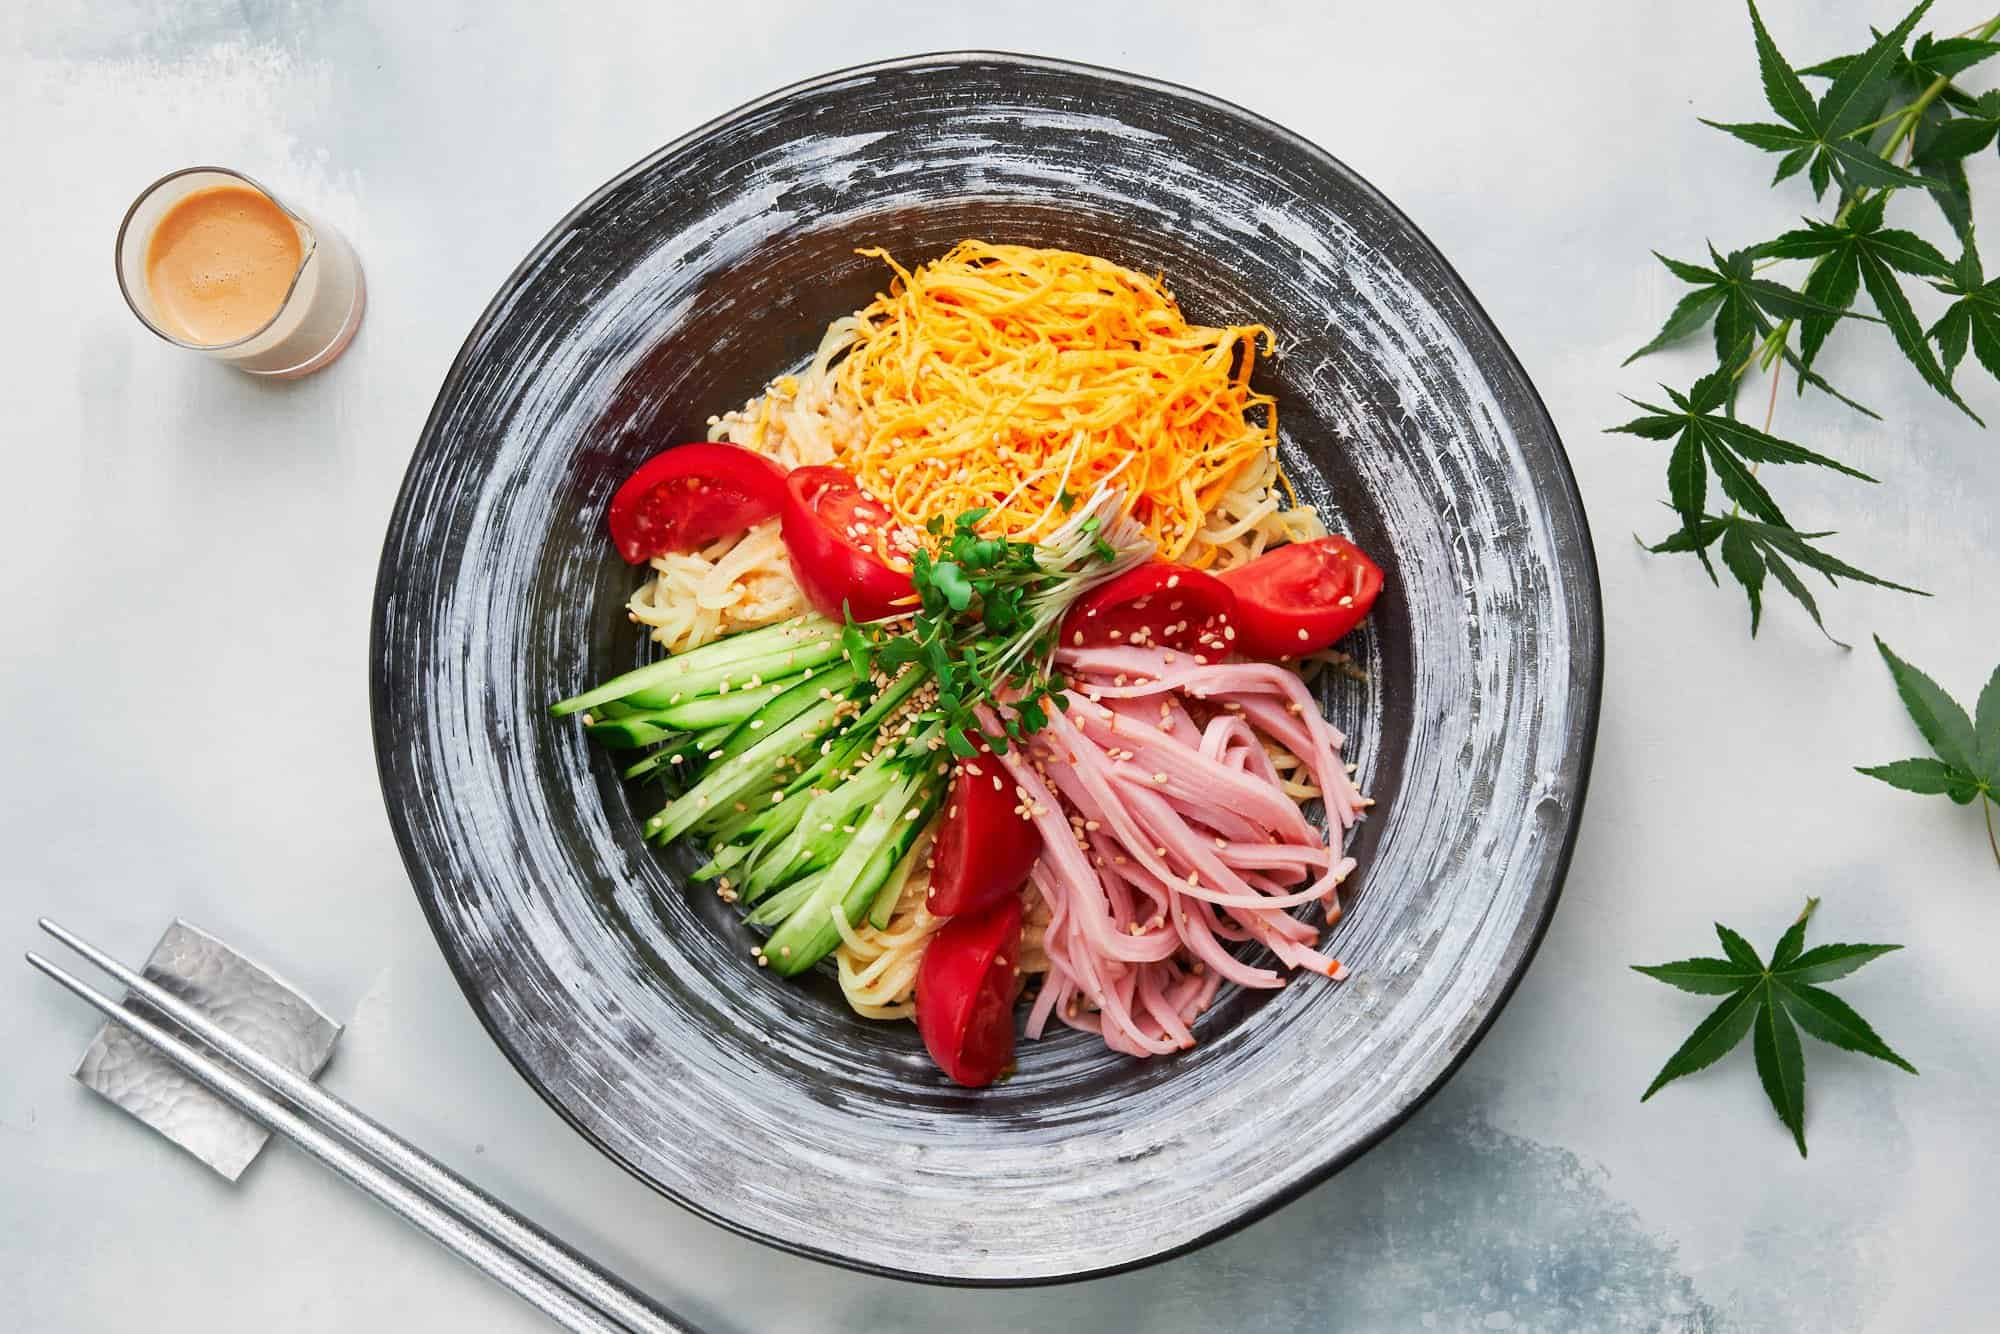 Topped with sweet tomatoes, crisp cucumbers, savory ham, and golden threads of egg, this easy ramen salad (hiyashi chuka) is the perfect summer meal.